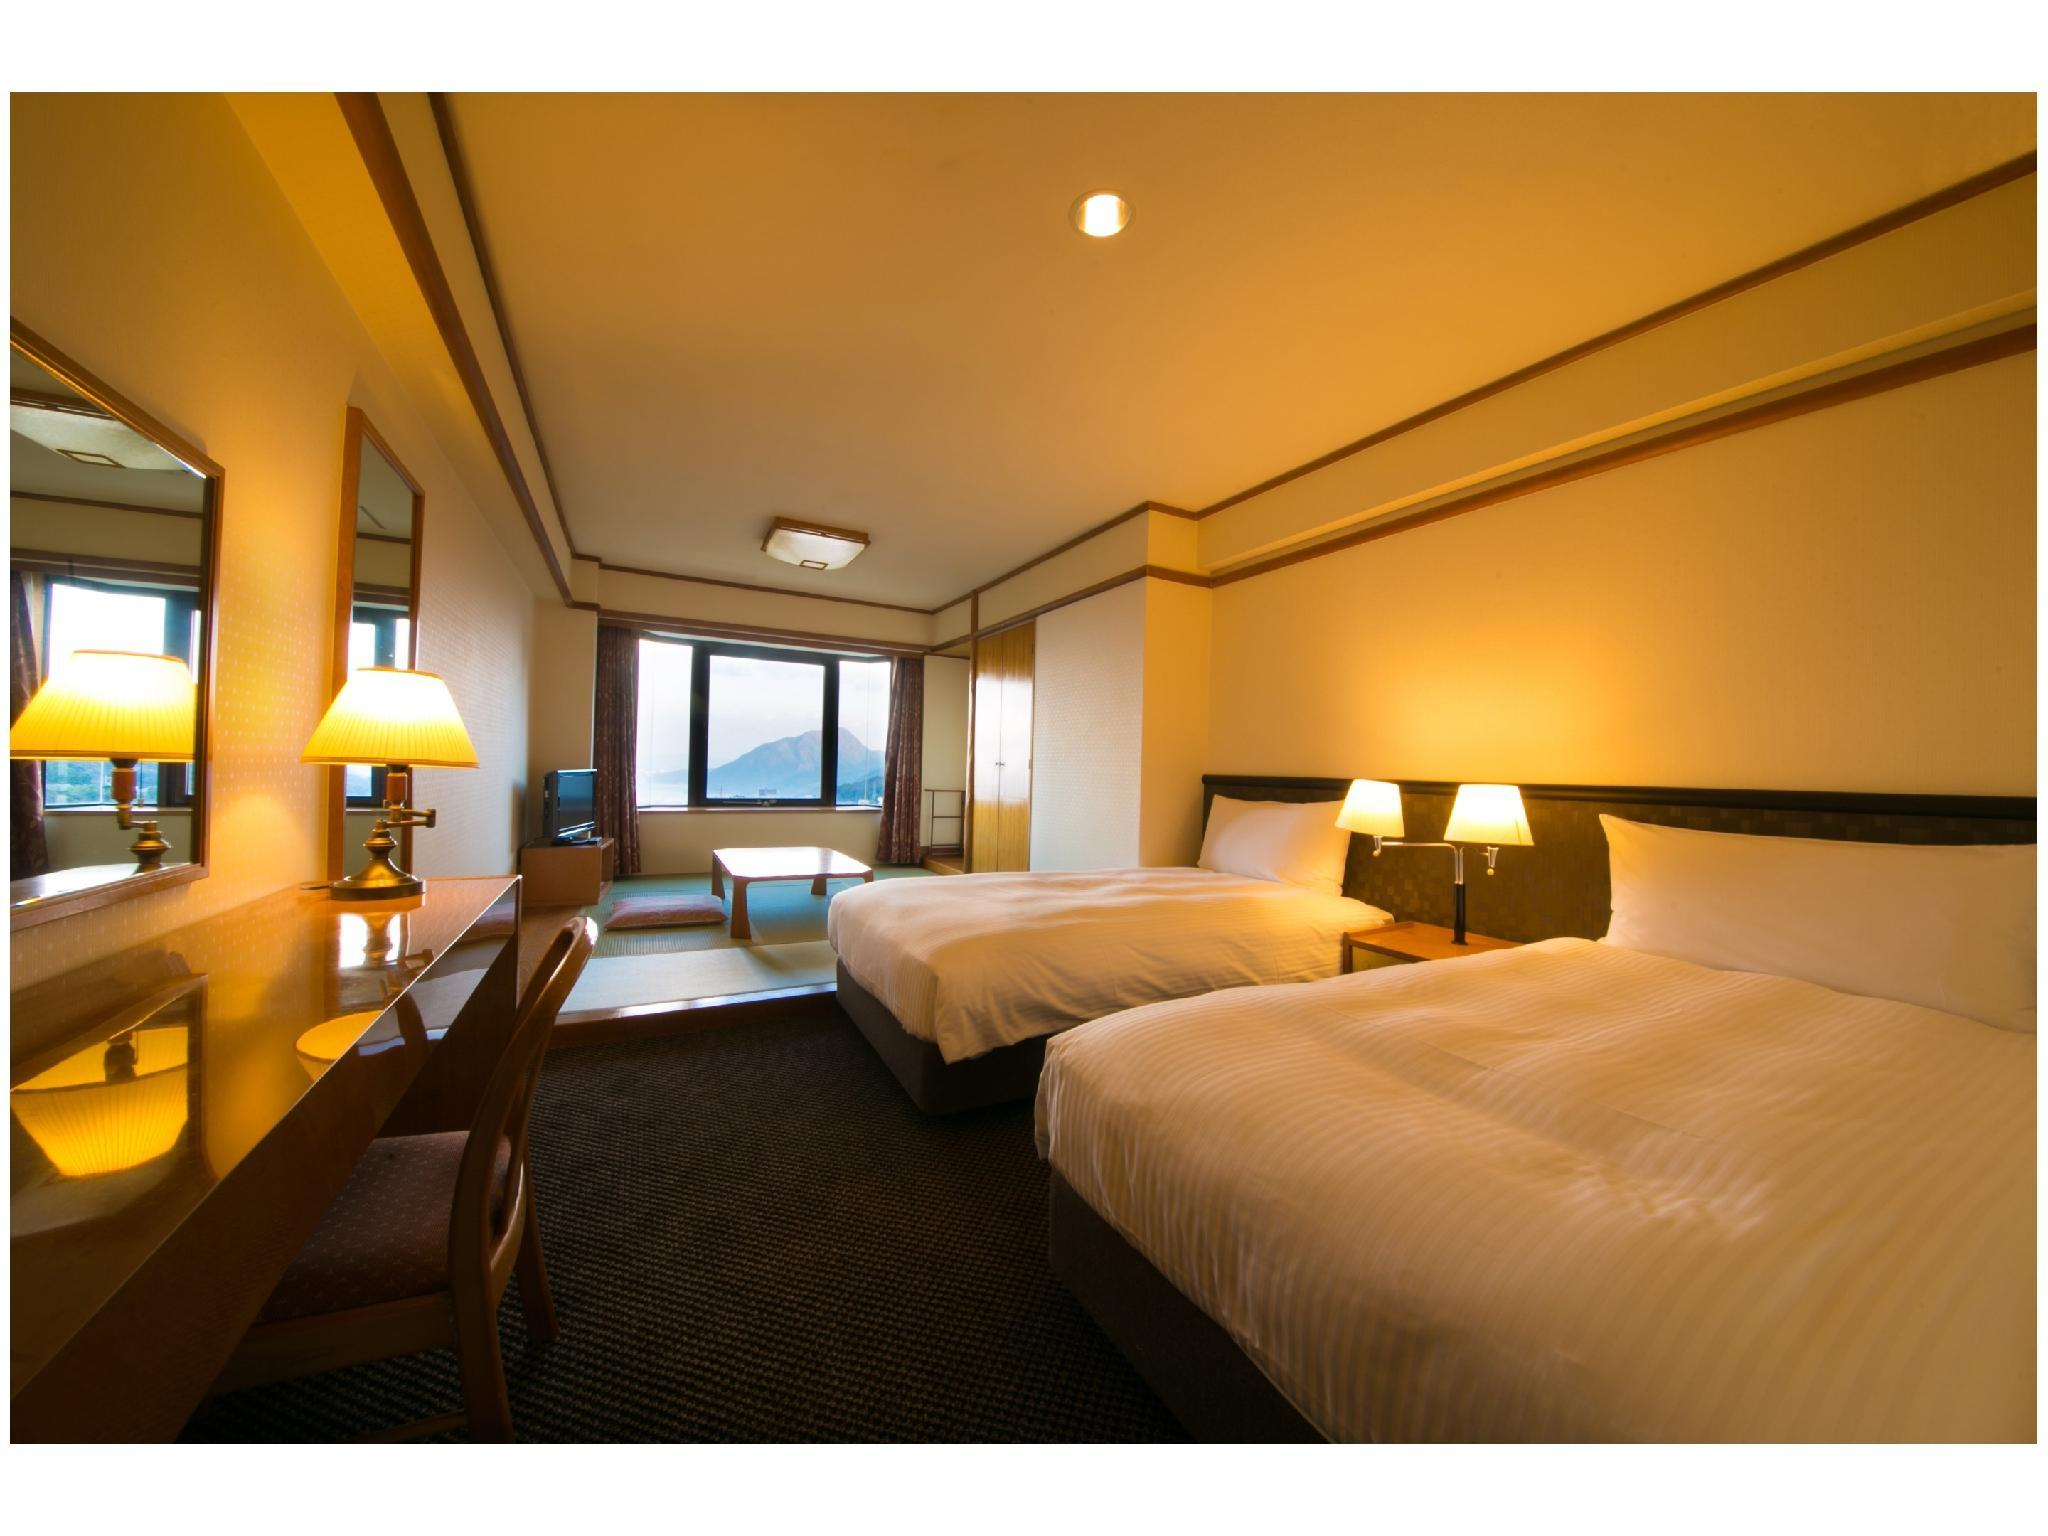 Japanese/Western-style Room (Standard Japanese/Western-style Room (2 Beds))